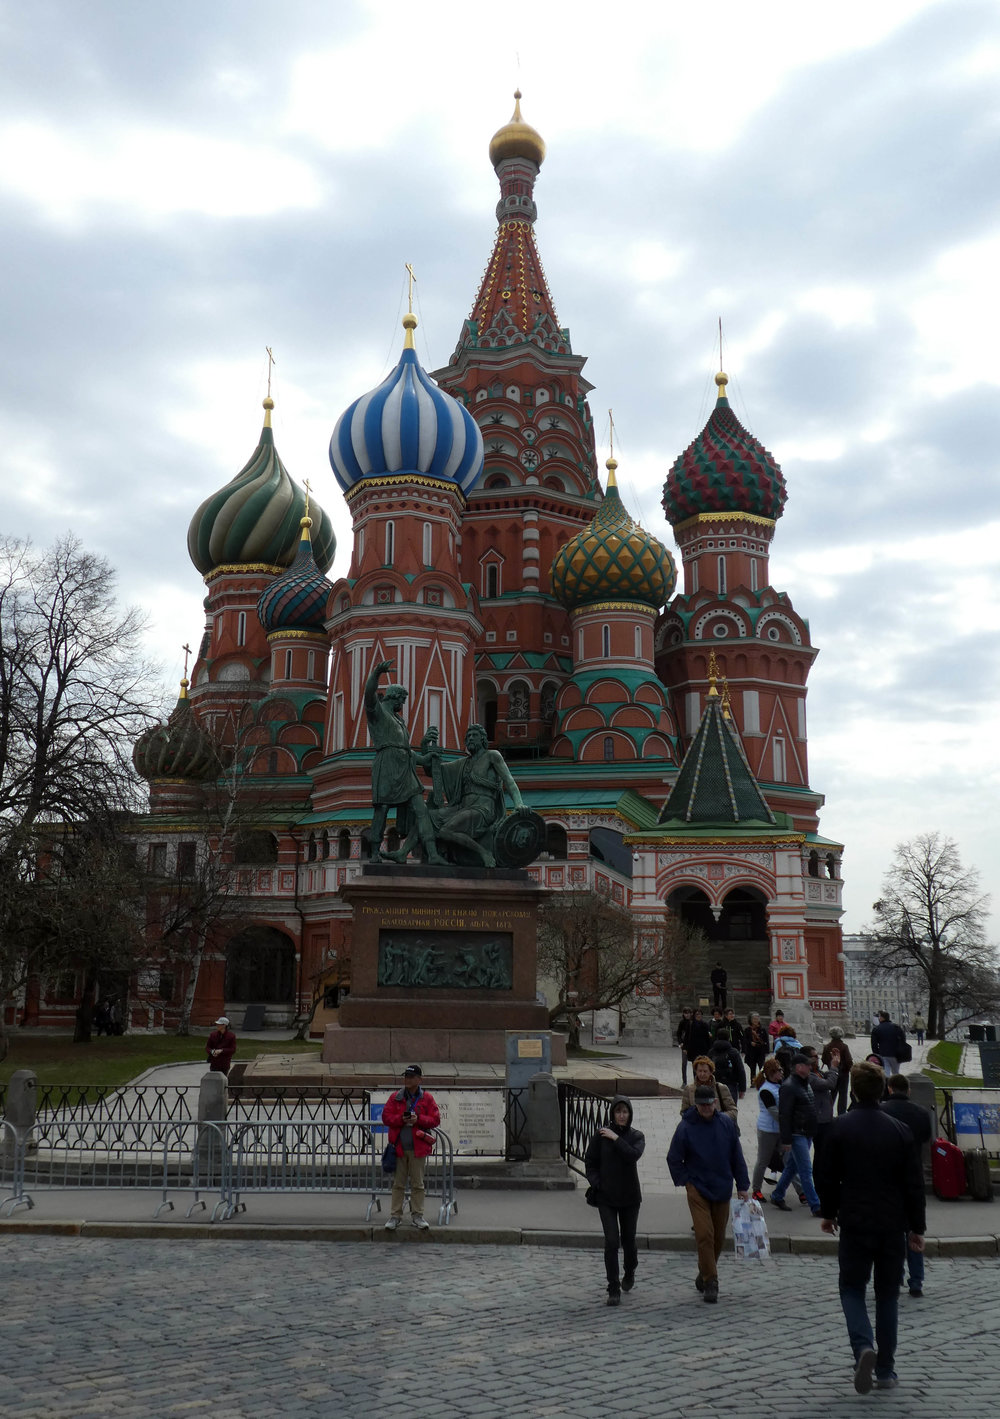 For those who wonder why Ivan the Terrible had this suffix in his name. He blinded the architect of this St. Basil Cathedral to protect the IP how to build it.